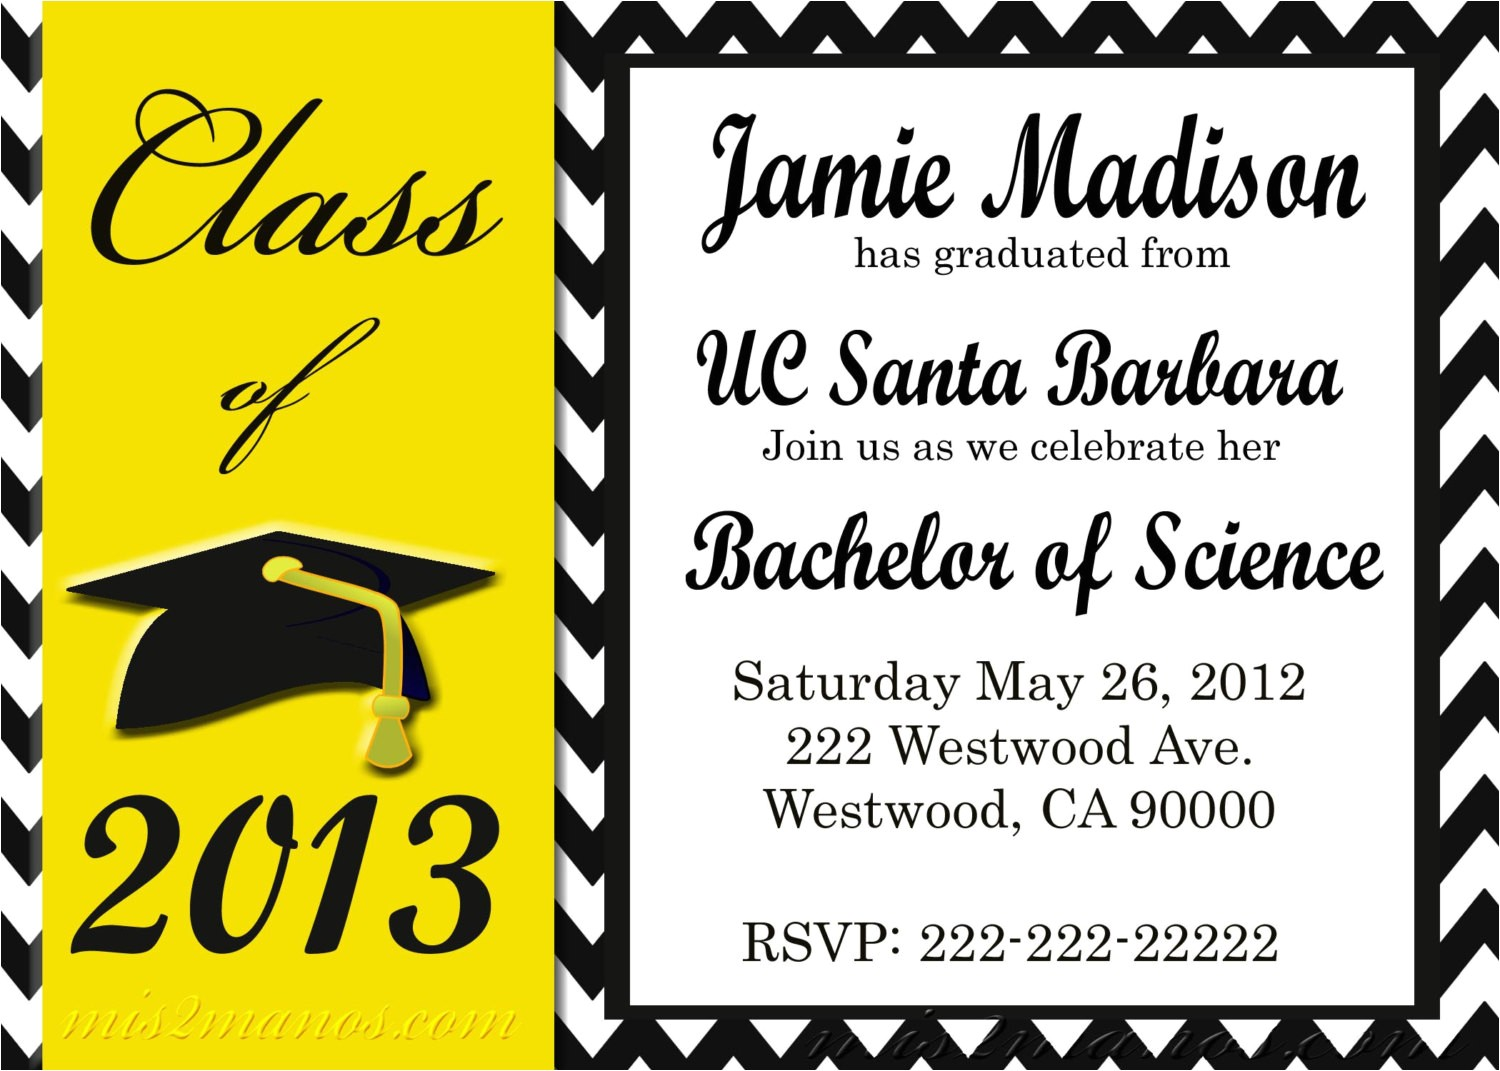 tips easy to create graduation party invitations templates templates with for create own graduation party invitations templates free ideas silverlininginvitations